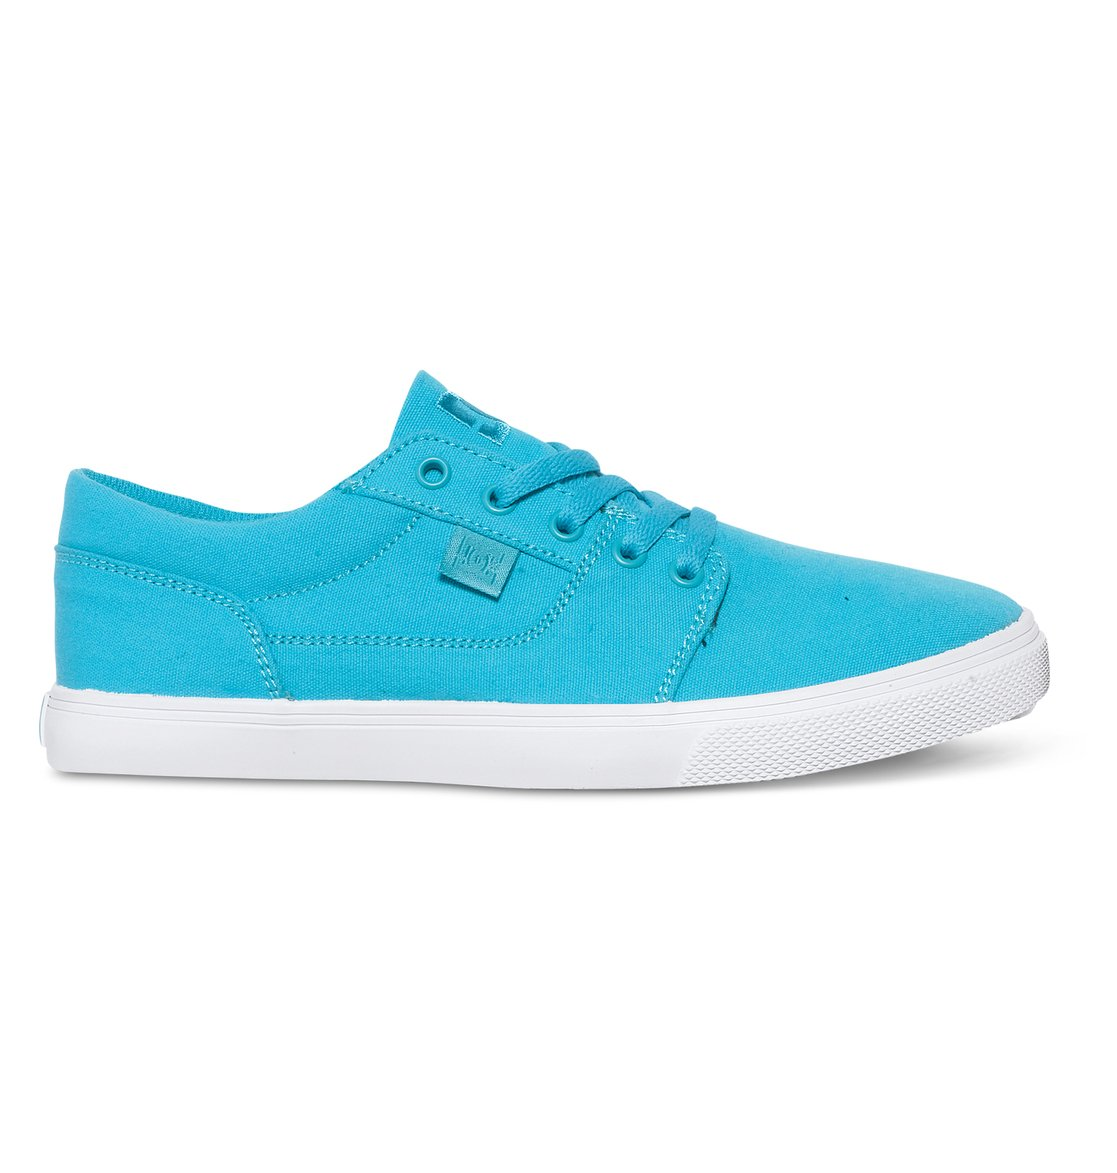 Tonik W TX - Dcshoes - Dcshoes������ ������� ���� Tonik W TX �� DC Shoes � ������� �� ��������� ����� 2015�. ��������������: ����������������� ����������� ��� ������� �������� �����, ������������� ���������� �������, ��������� ������� ���������� ������� DC Pill Pattern.<br>